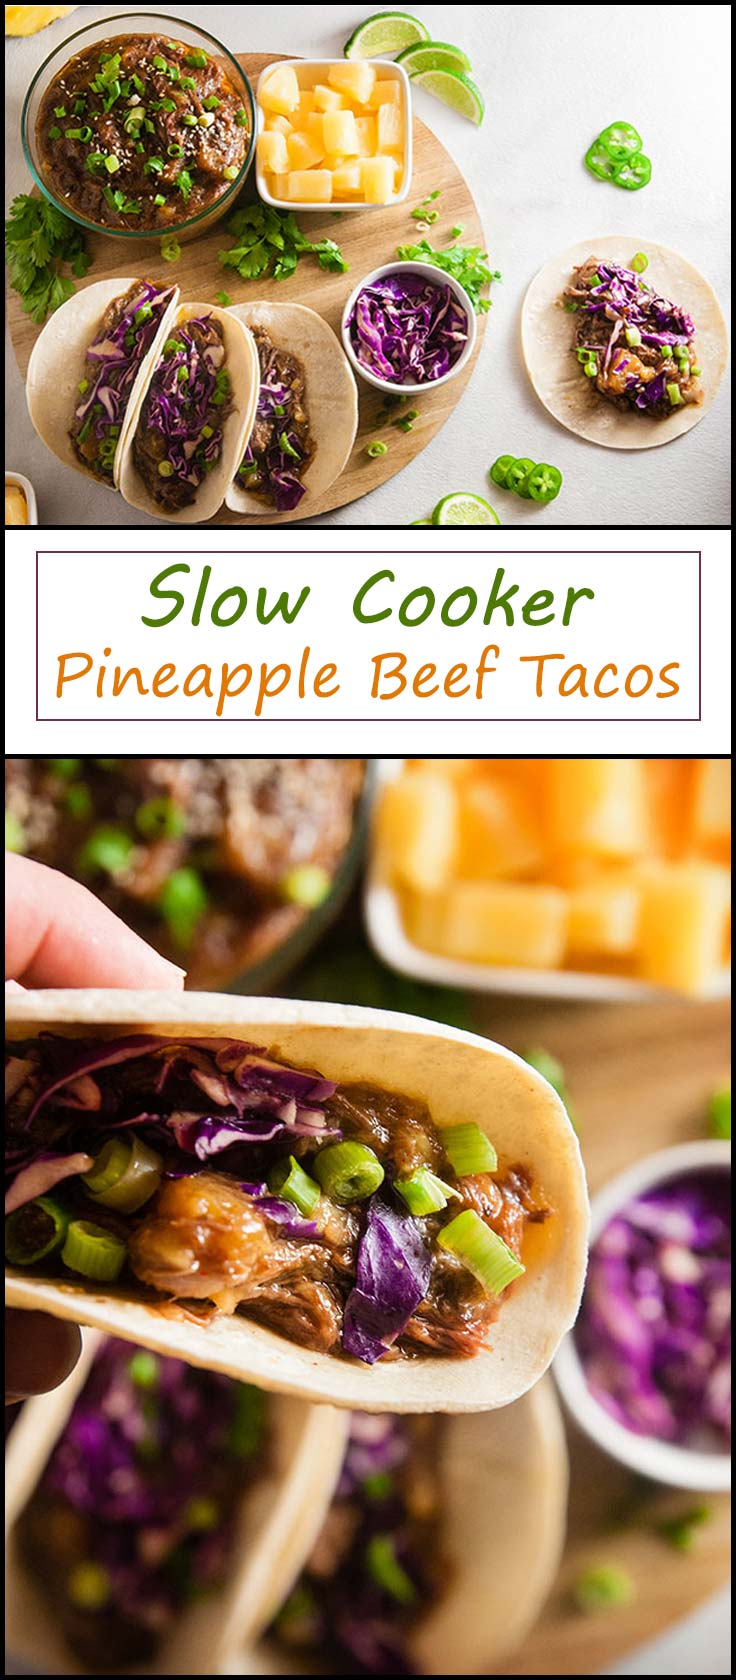 Slow Cooker Pineapple Beef Tacos from www.seasonedsprinkles.com